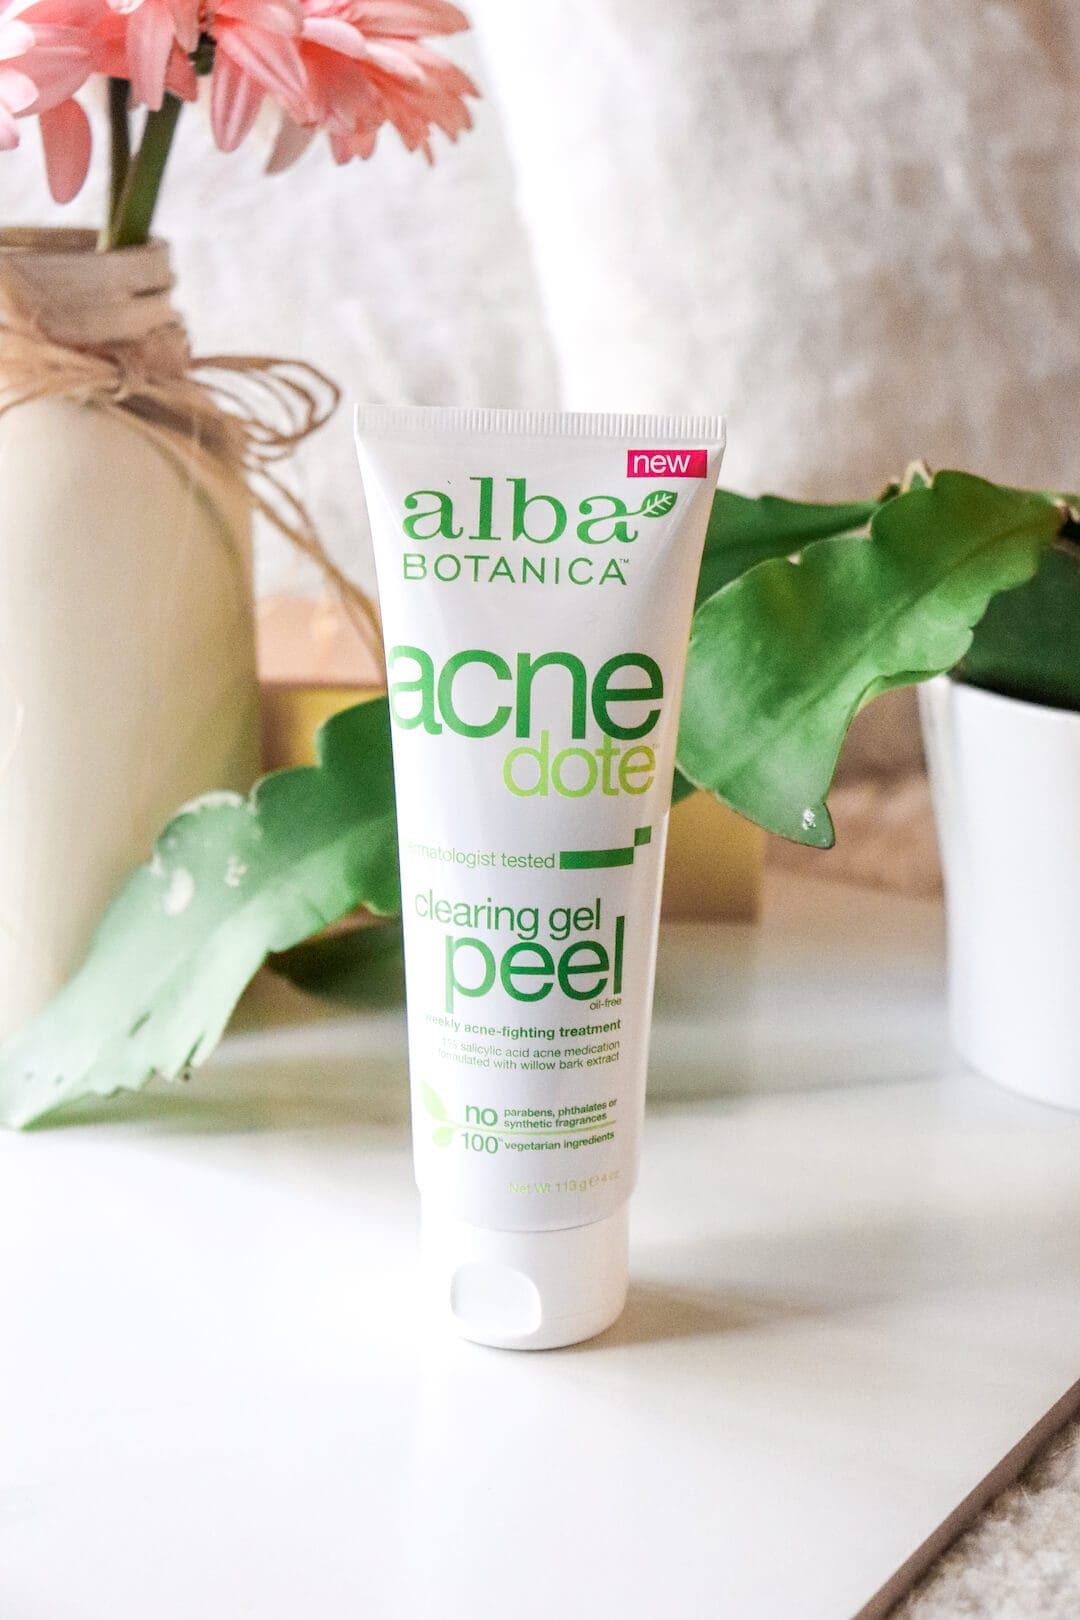 alba-botanica-acnedote-clearing-peel-review